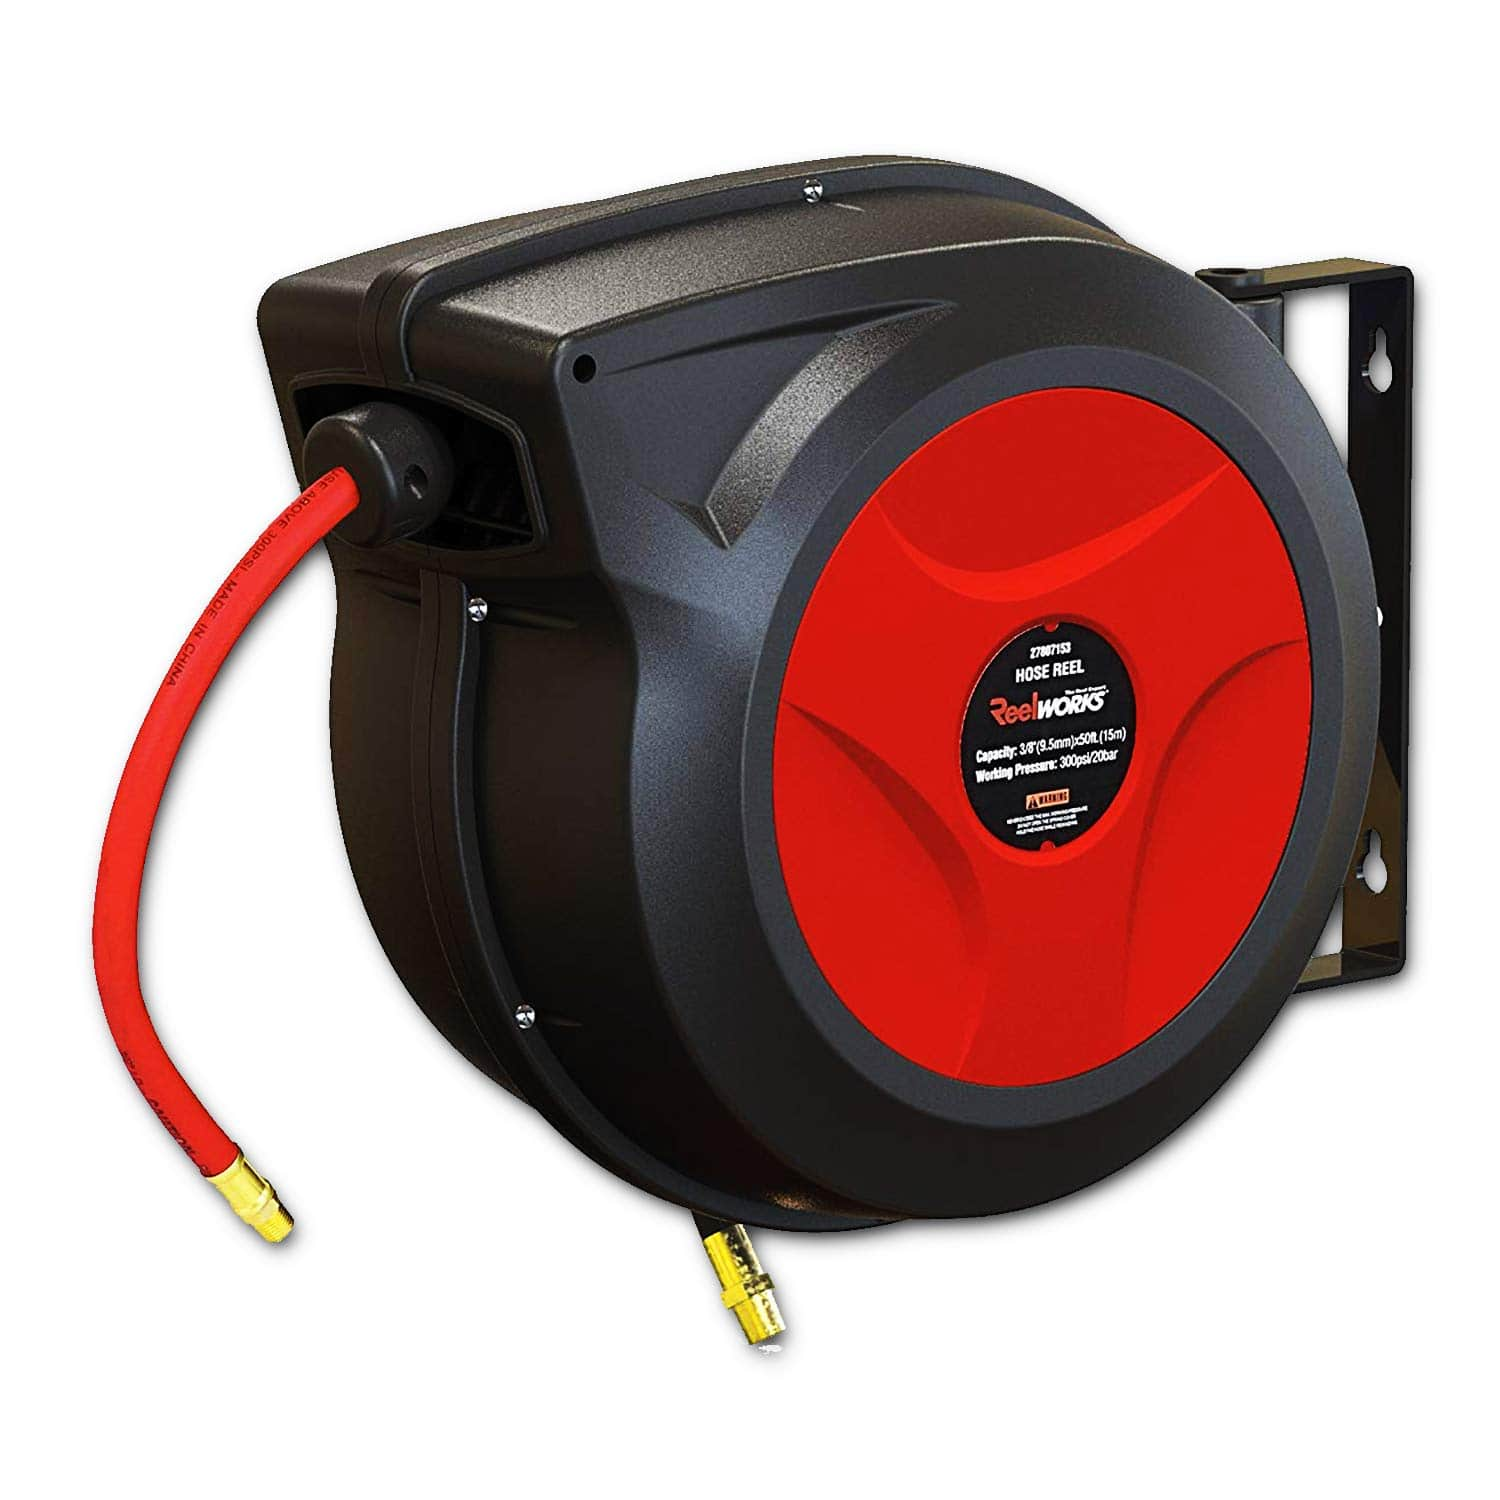 """LIGHNING DEAL REELWORKS Air/Water Hose Reel Automatic Retractable 3/8"""" Inch x 50' for $51.78 + FS"""